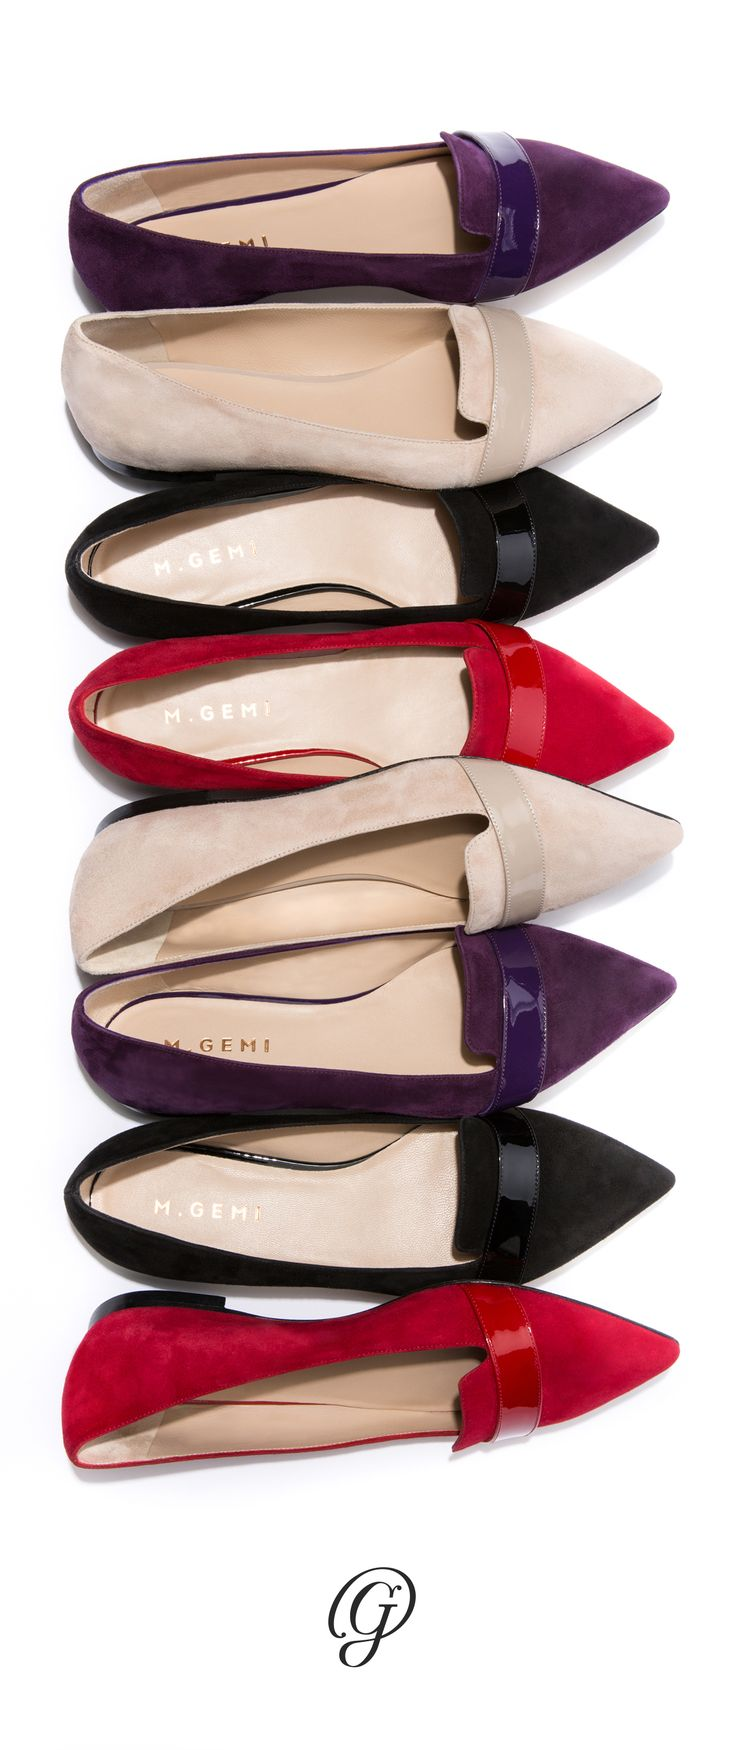 Handcrafted shoes. Fresh from Italy. Direct to you.